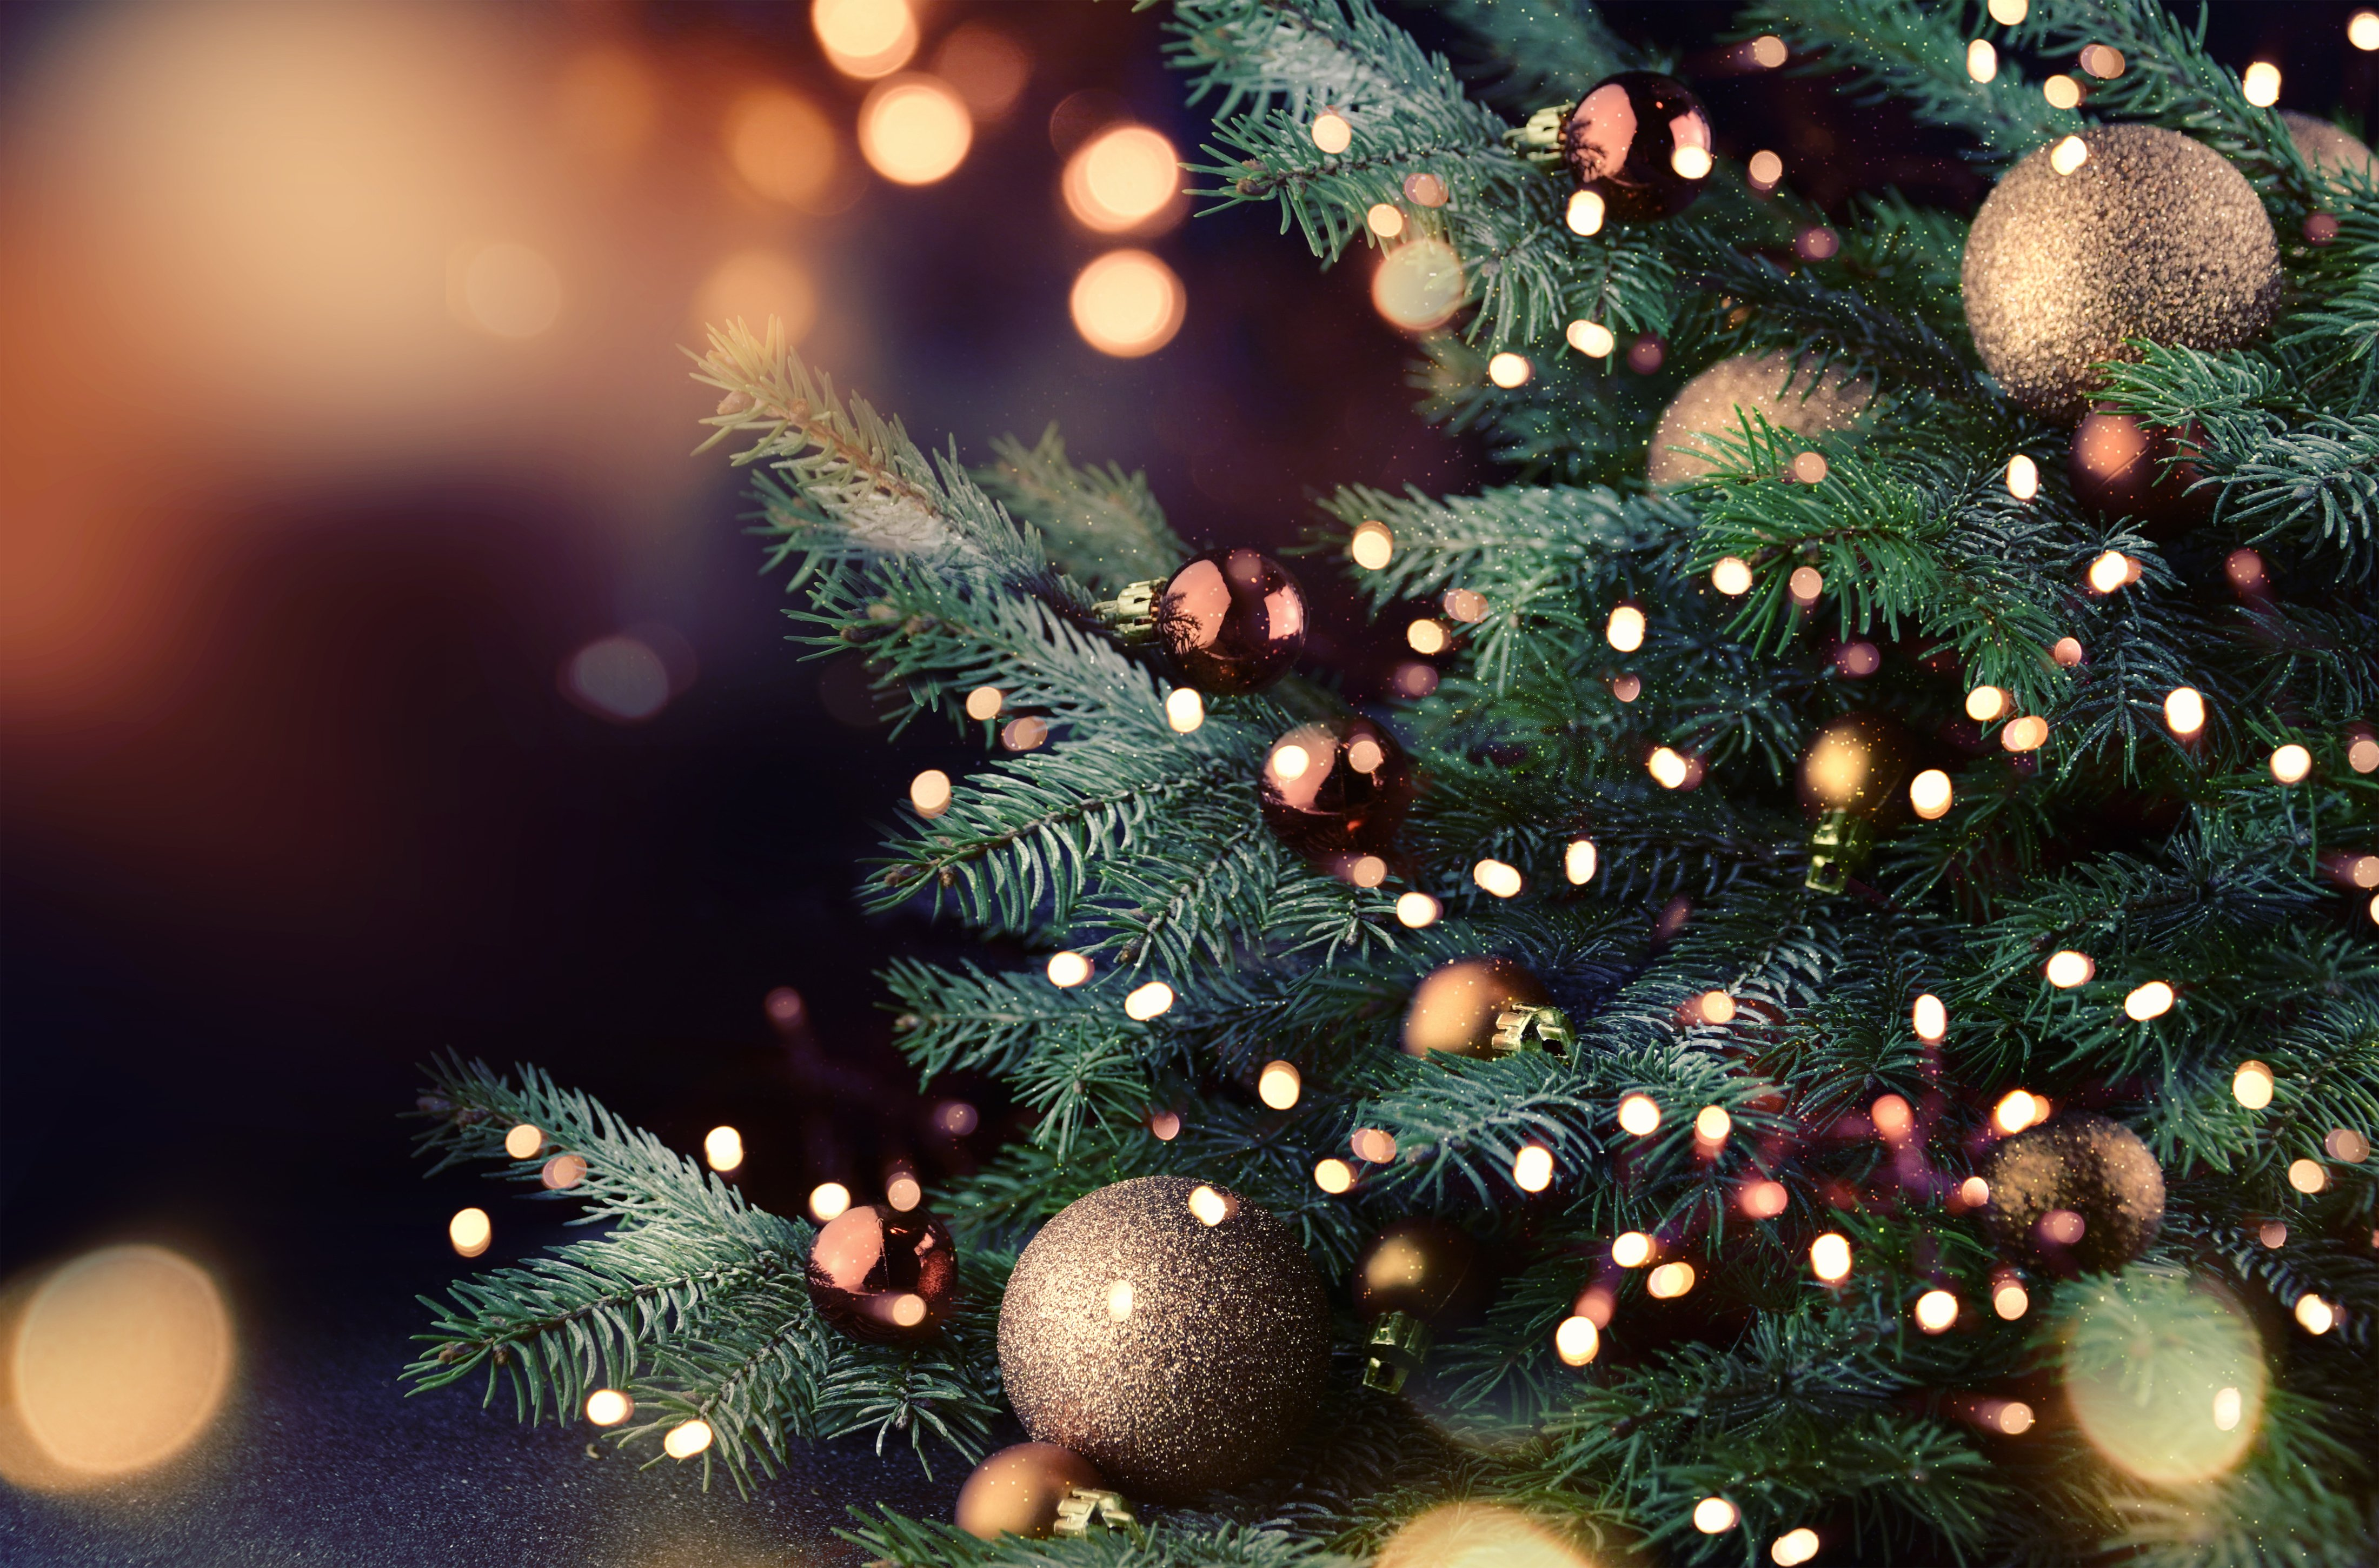 Christmas Tree with lights | Photo: Shutterstock